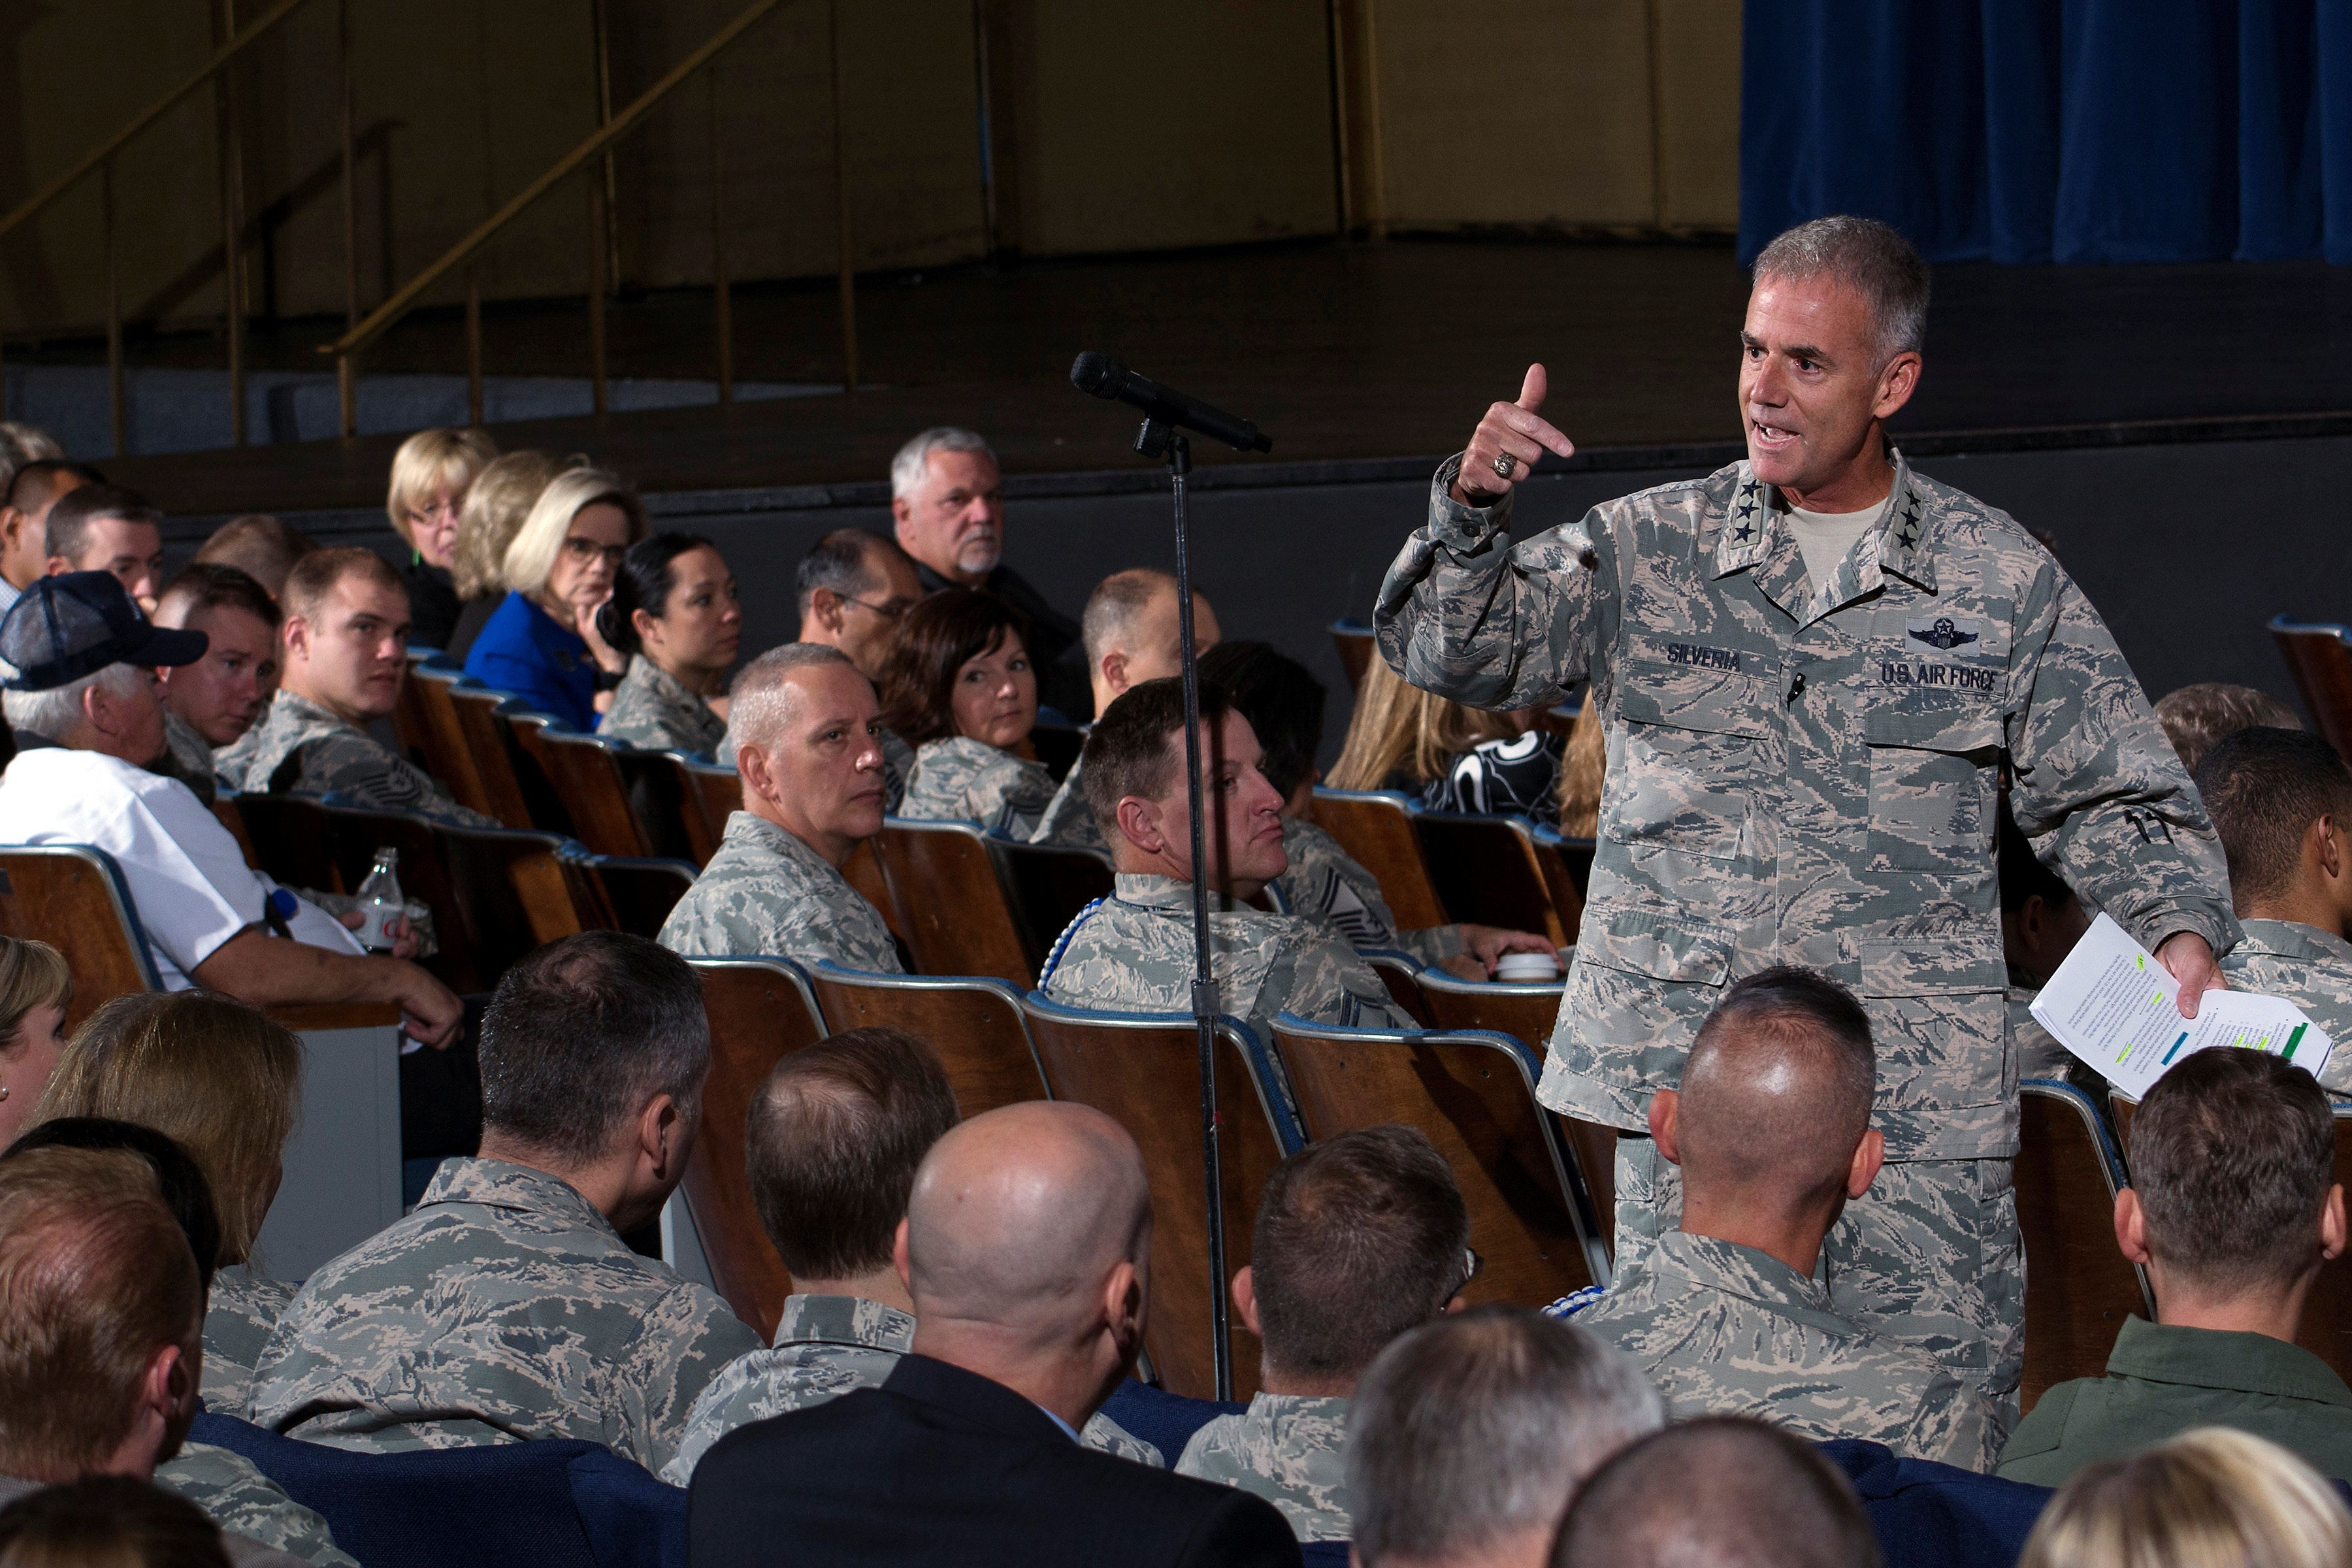 Lt. Gen. Jay Silveria, superintendent of the U.S. Air Force Academy, discusses his goals and priorities to an audience of Total Force Airmen at the United States Air Force Academy in Colorado, U.S. on August 17, 2017.   Courtesy Mike Kaplan/U.S. Air Force/Handout via REUTERS   ATTENTION EDITORS - THIS IMAGE HAS BEEN SUPPLIED BY A THIRD PARTY.